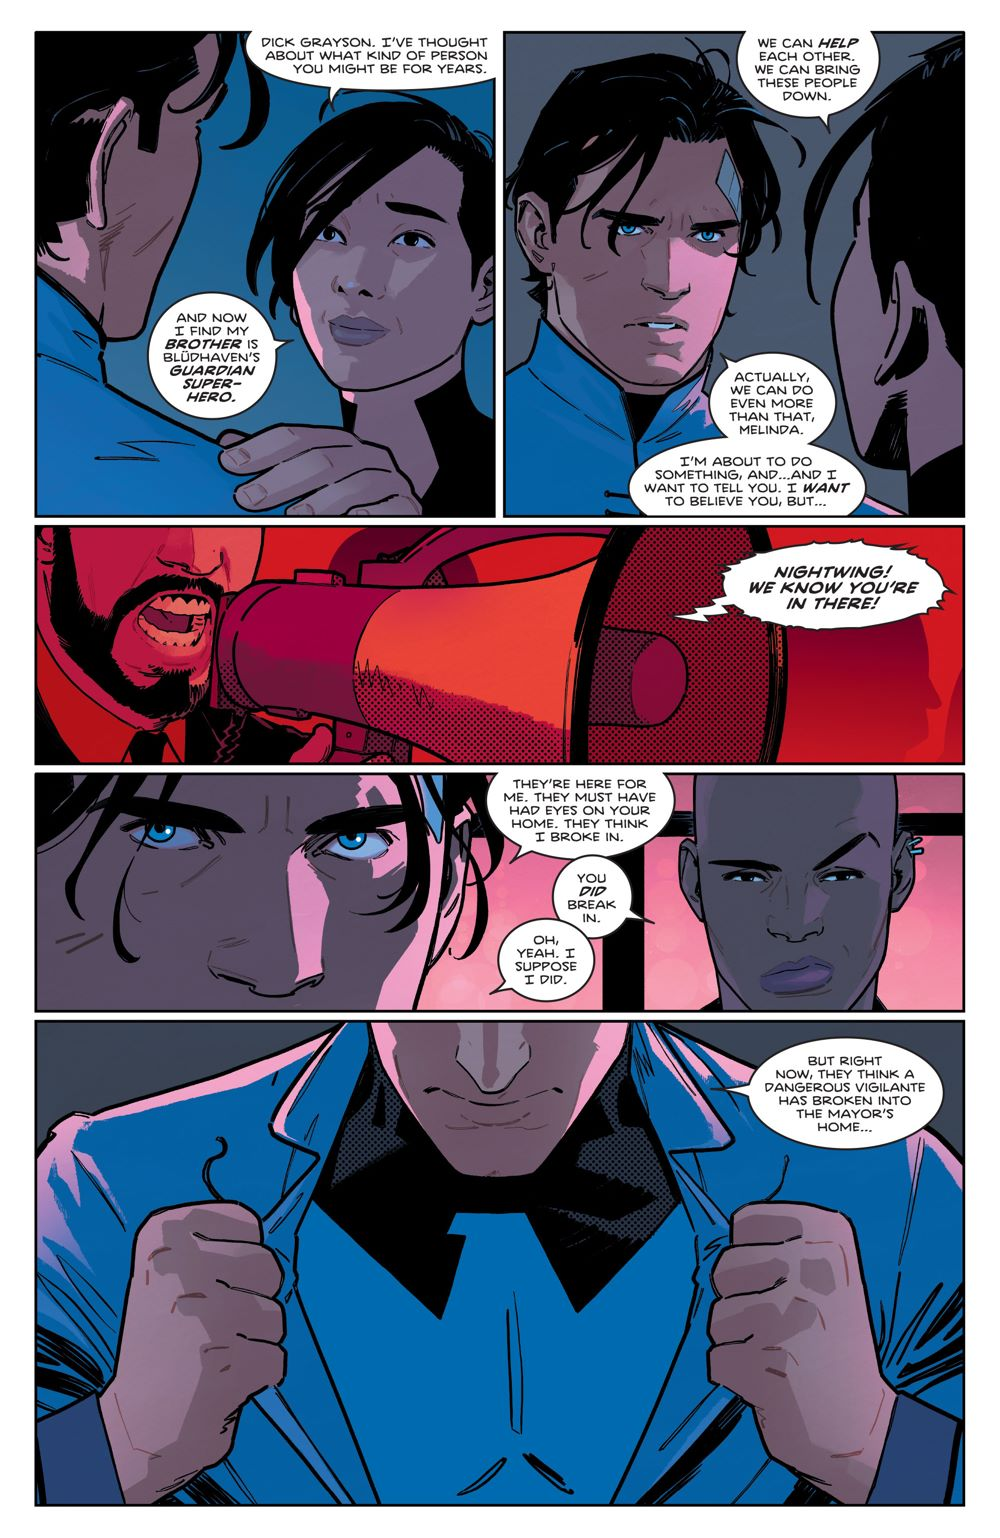 Nightwing-83-5_6115c8bbbb6577.42569928 ComicList Previews: NIGHTWING #83